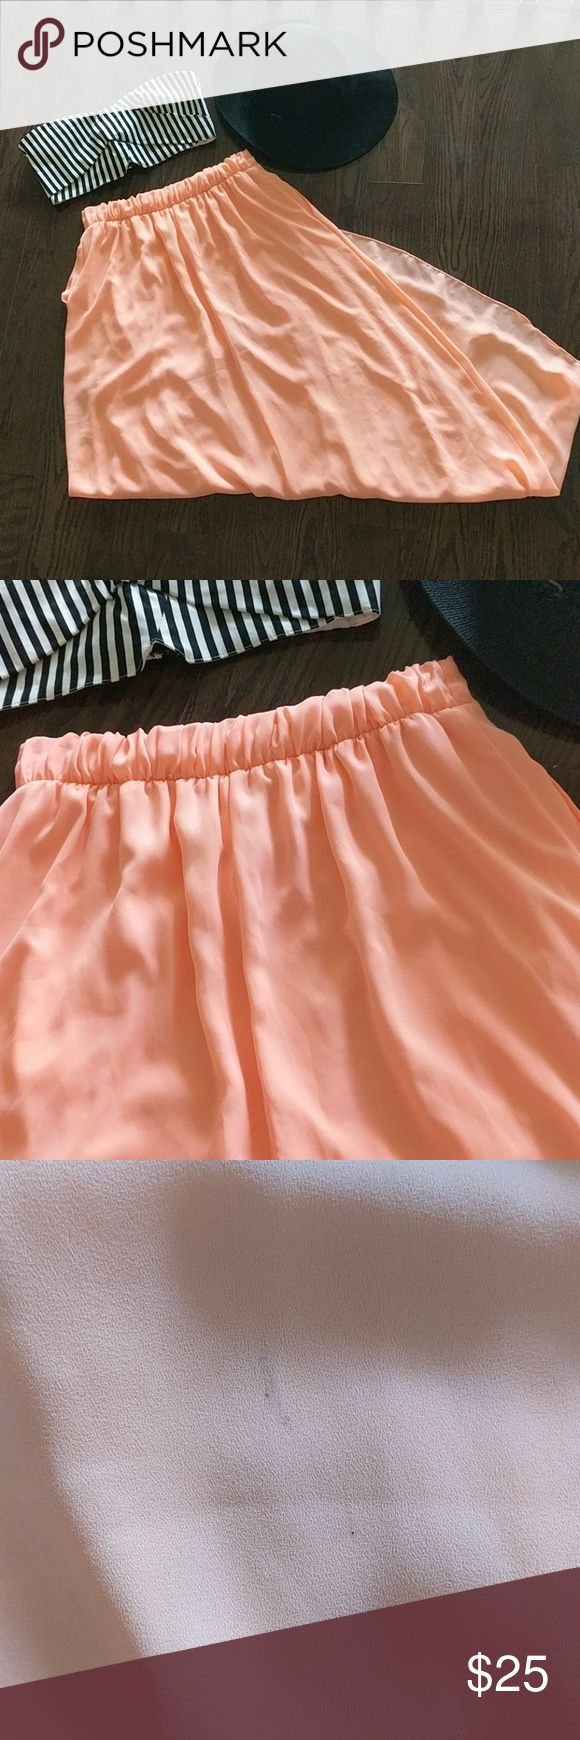 Selling this Boutique Neon Coral Maxi Skirt on Poshmark! My username is: aed10e. #shopmycloset #poshmark #fashion #shopping #style #forsale #Dresses & Skirts